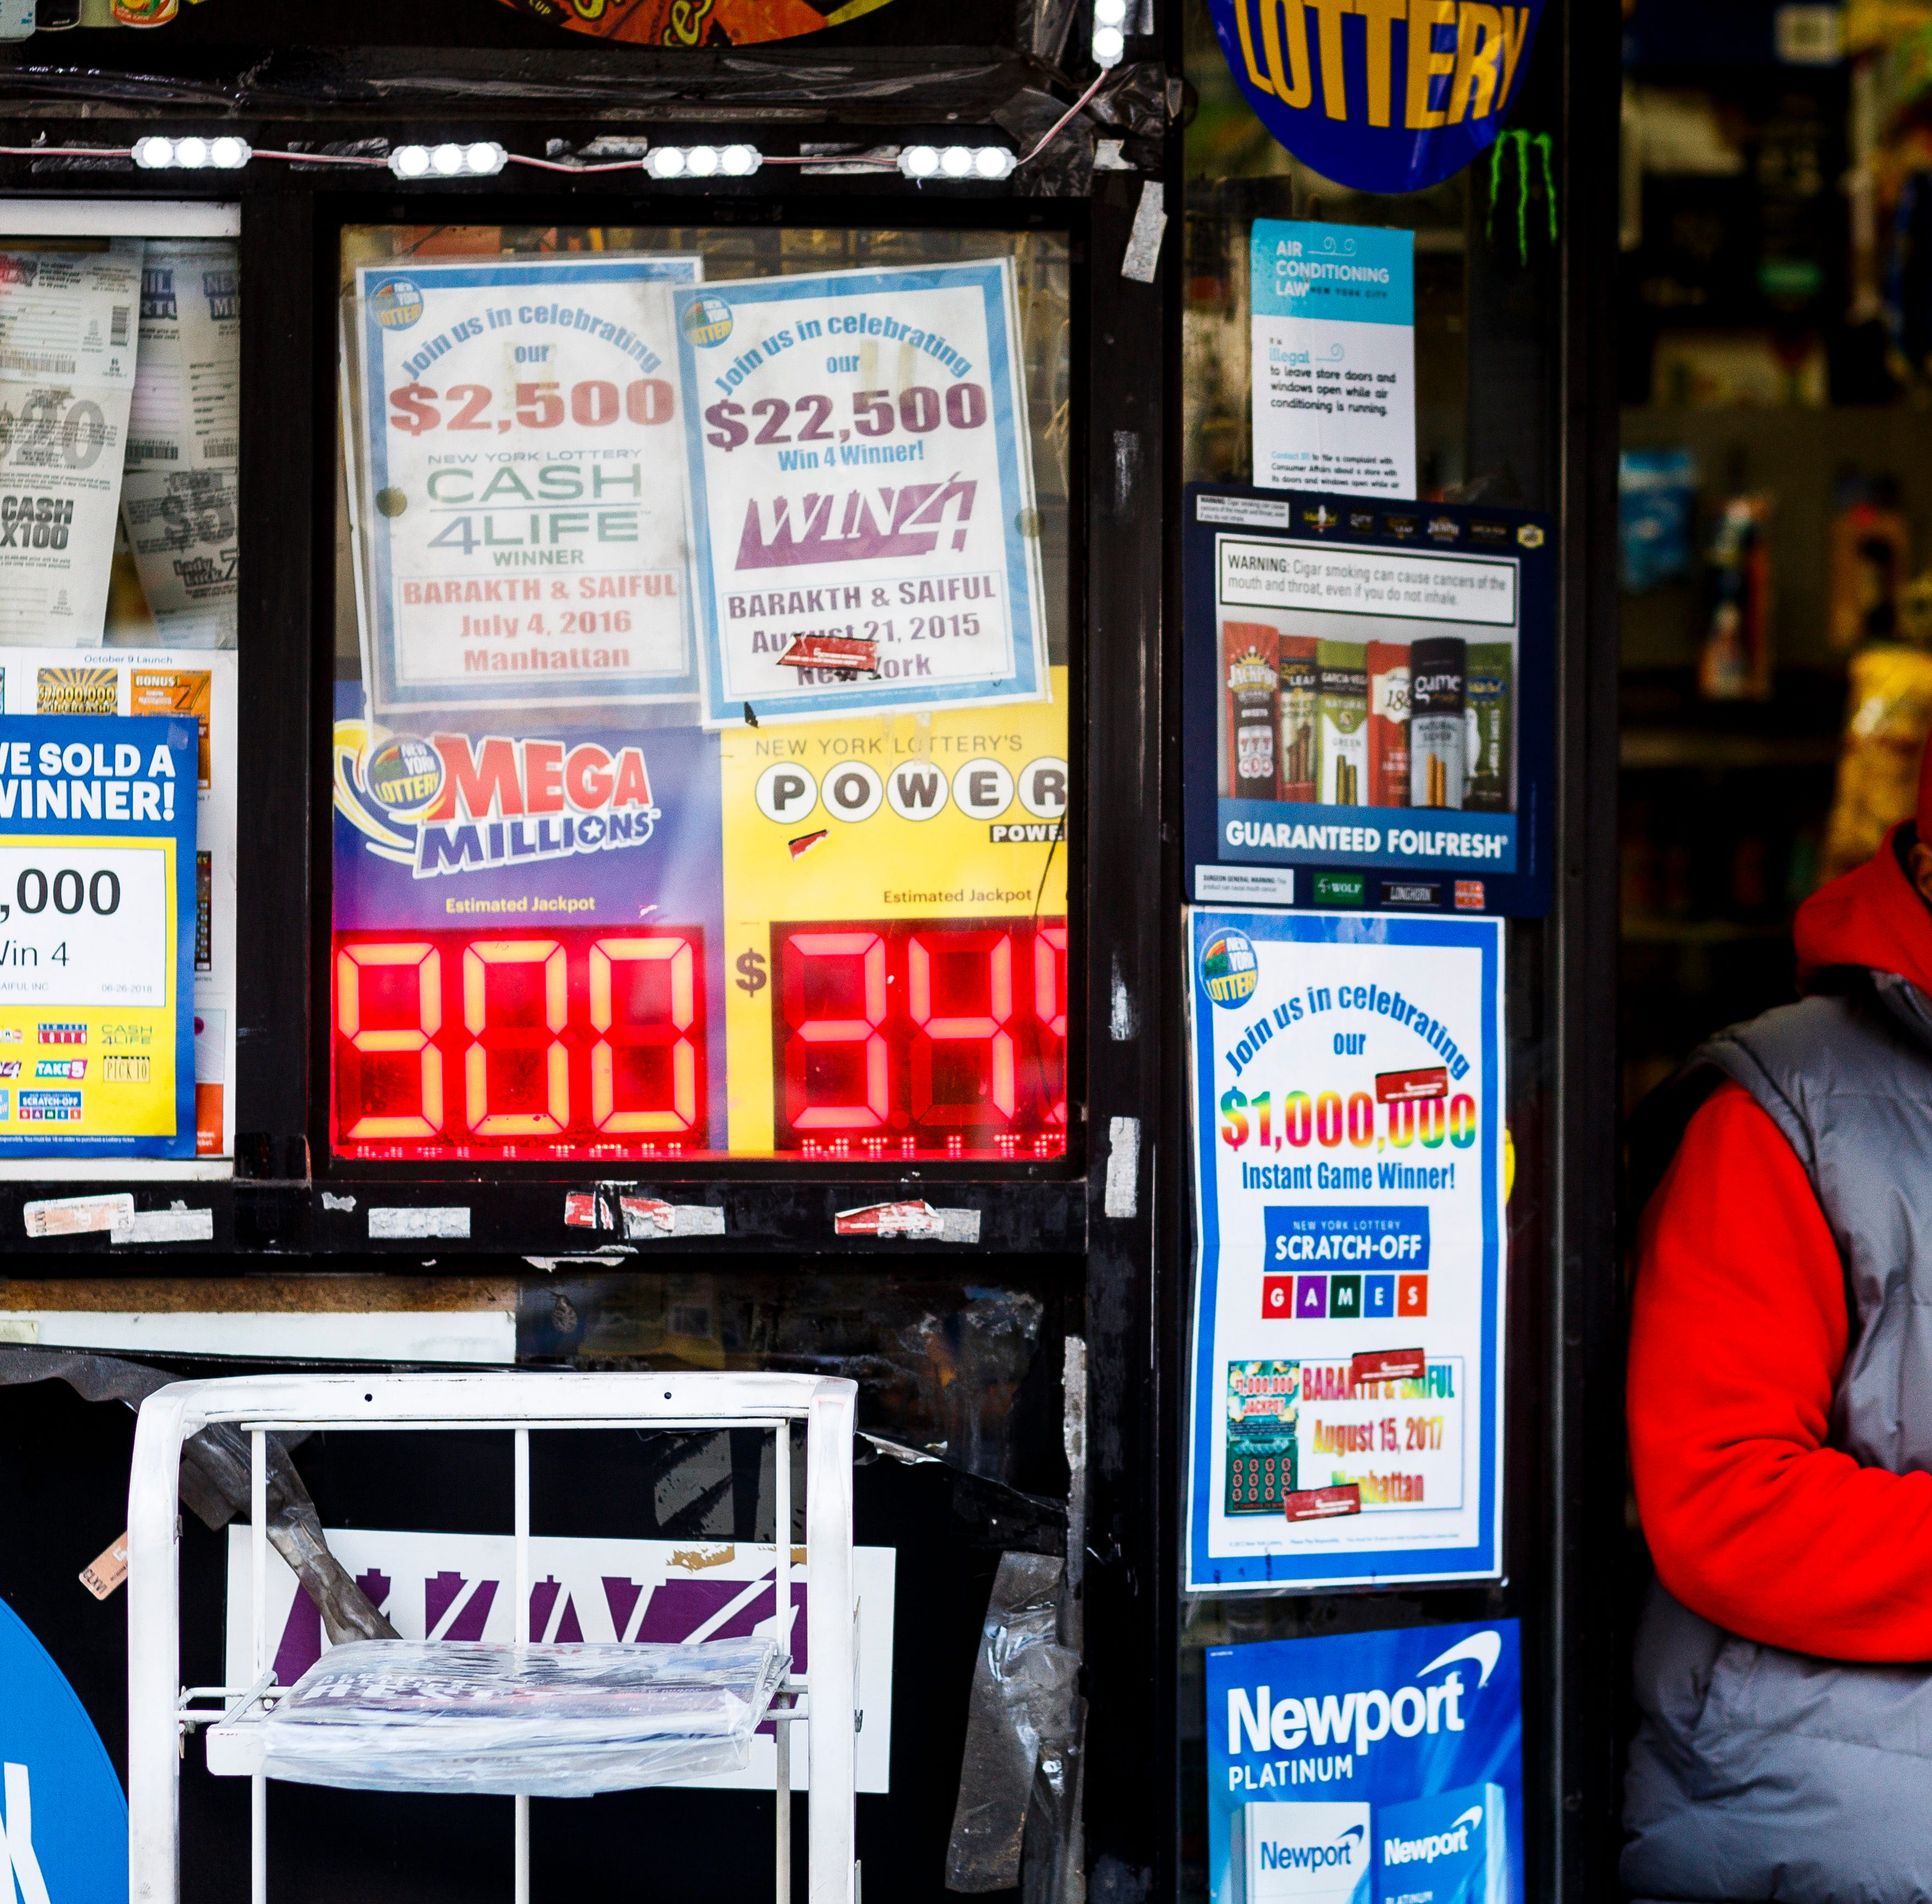 Mega Millions: The lottery stores in New York with the biggest winners